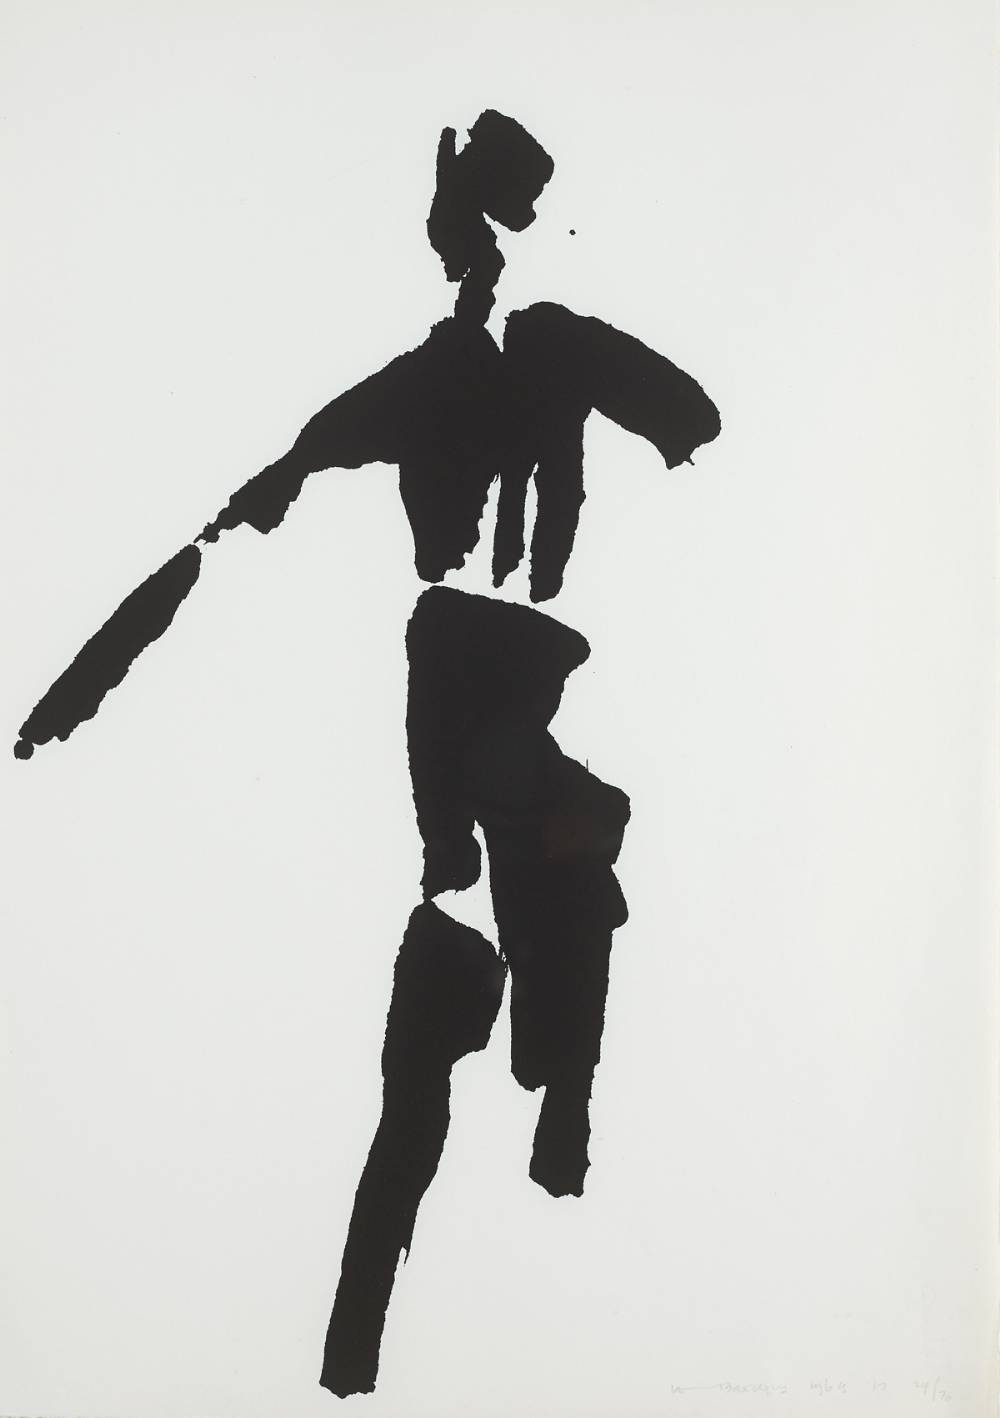 THE T�IN. SWORDSMAN, 1969 by Louis le Brocquy HRHA (1916-2012) at Whyte's Auctions